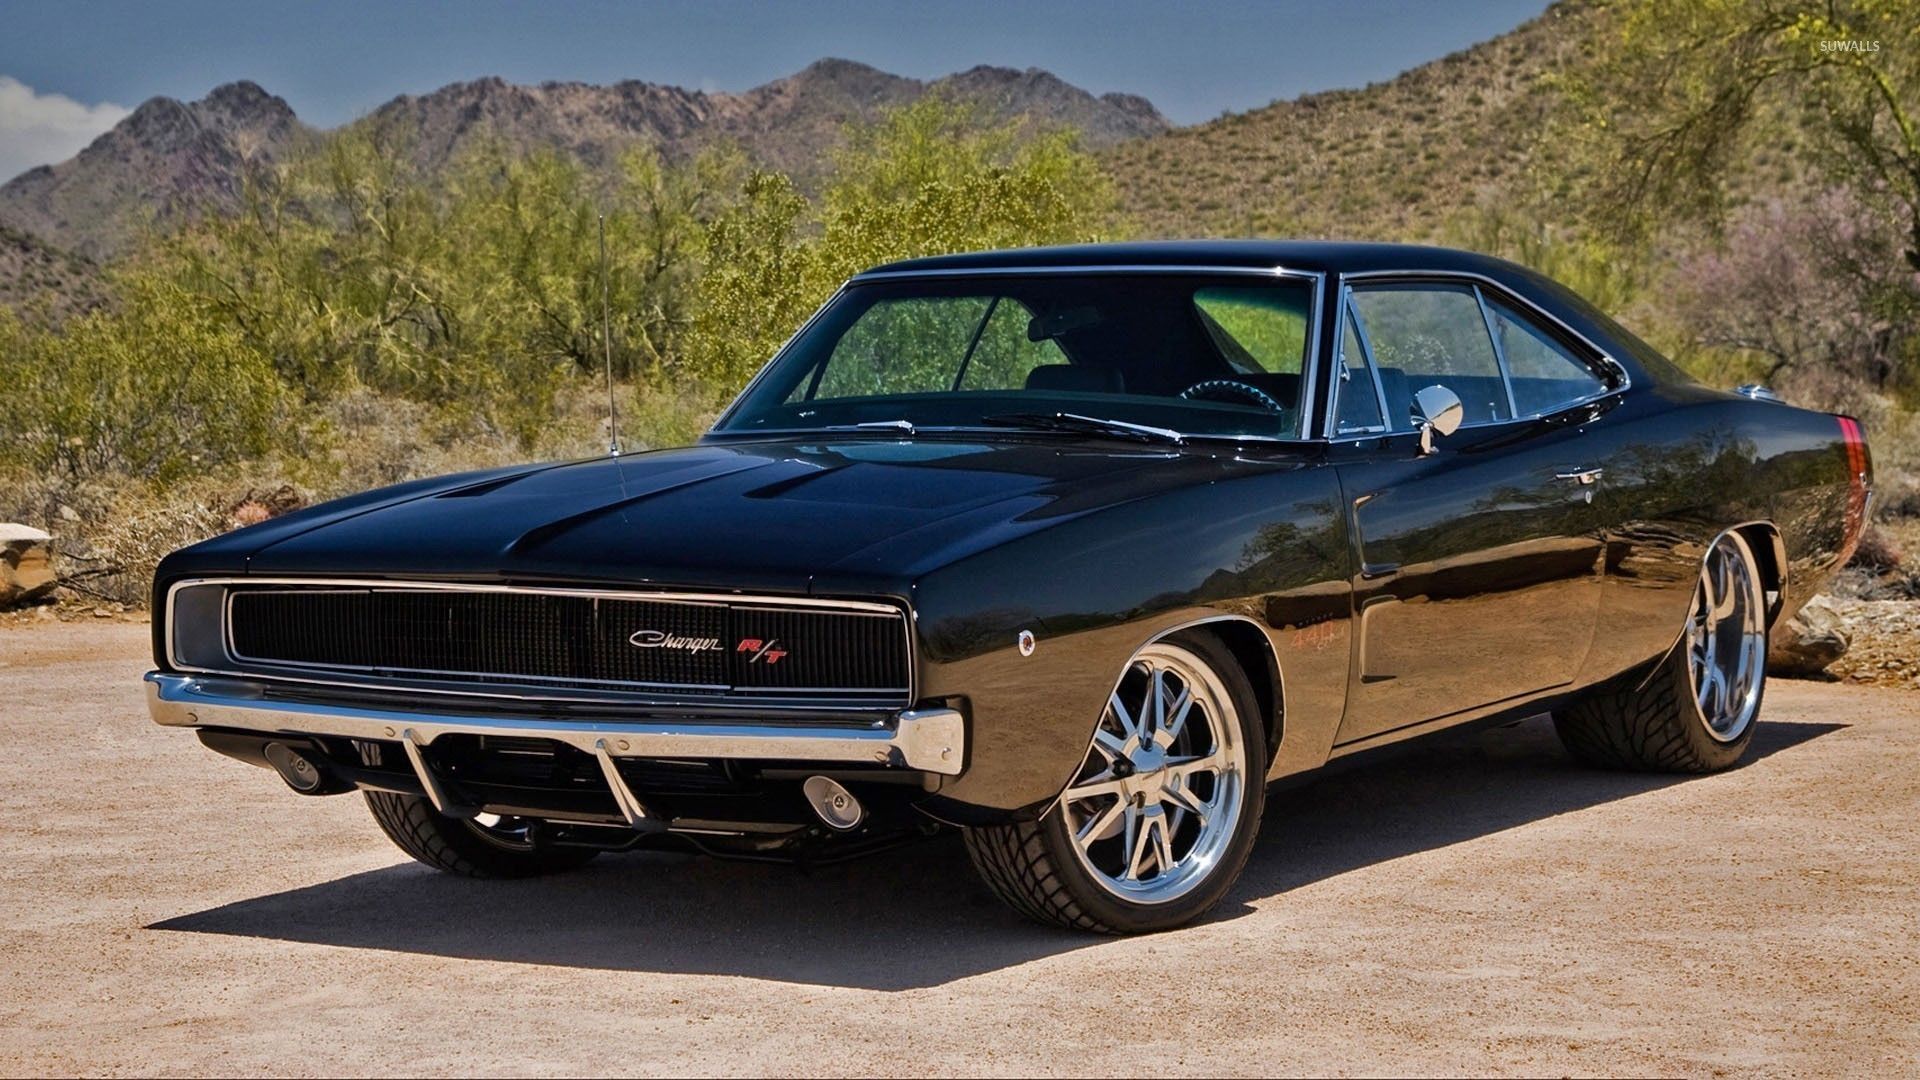 1920x1080 1970 Dodge Charger R/T front side view wallpaper  jpg